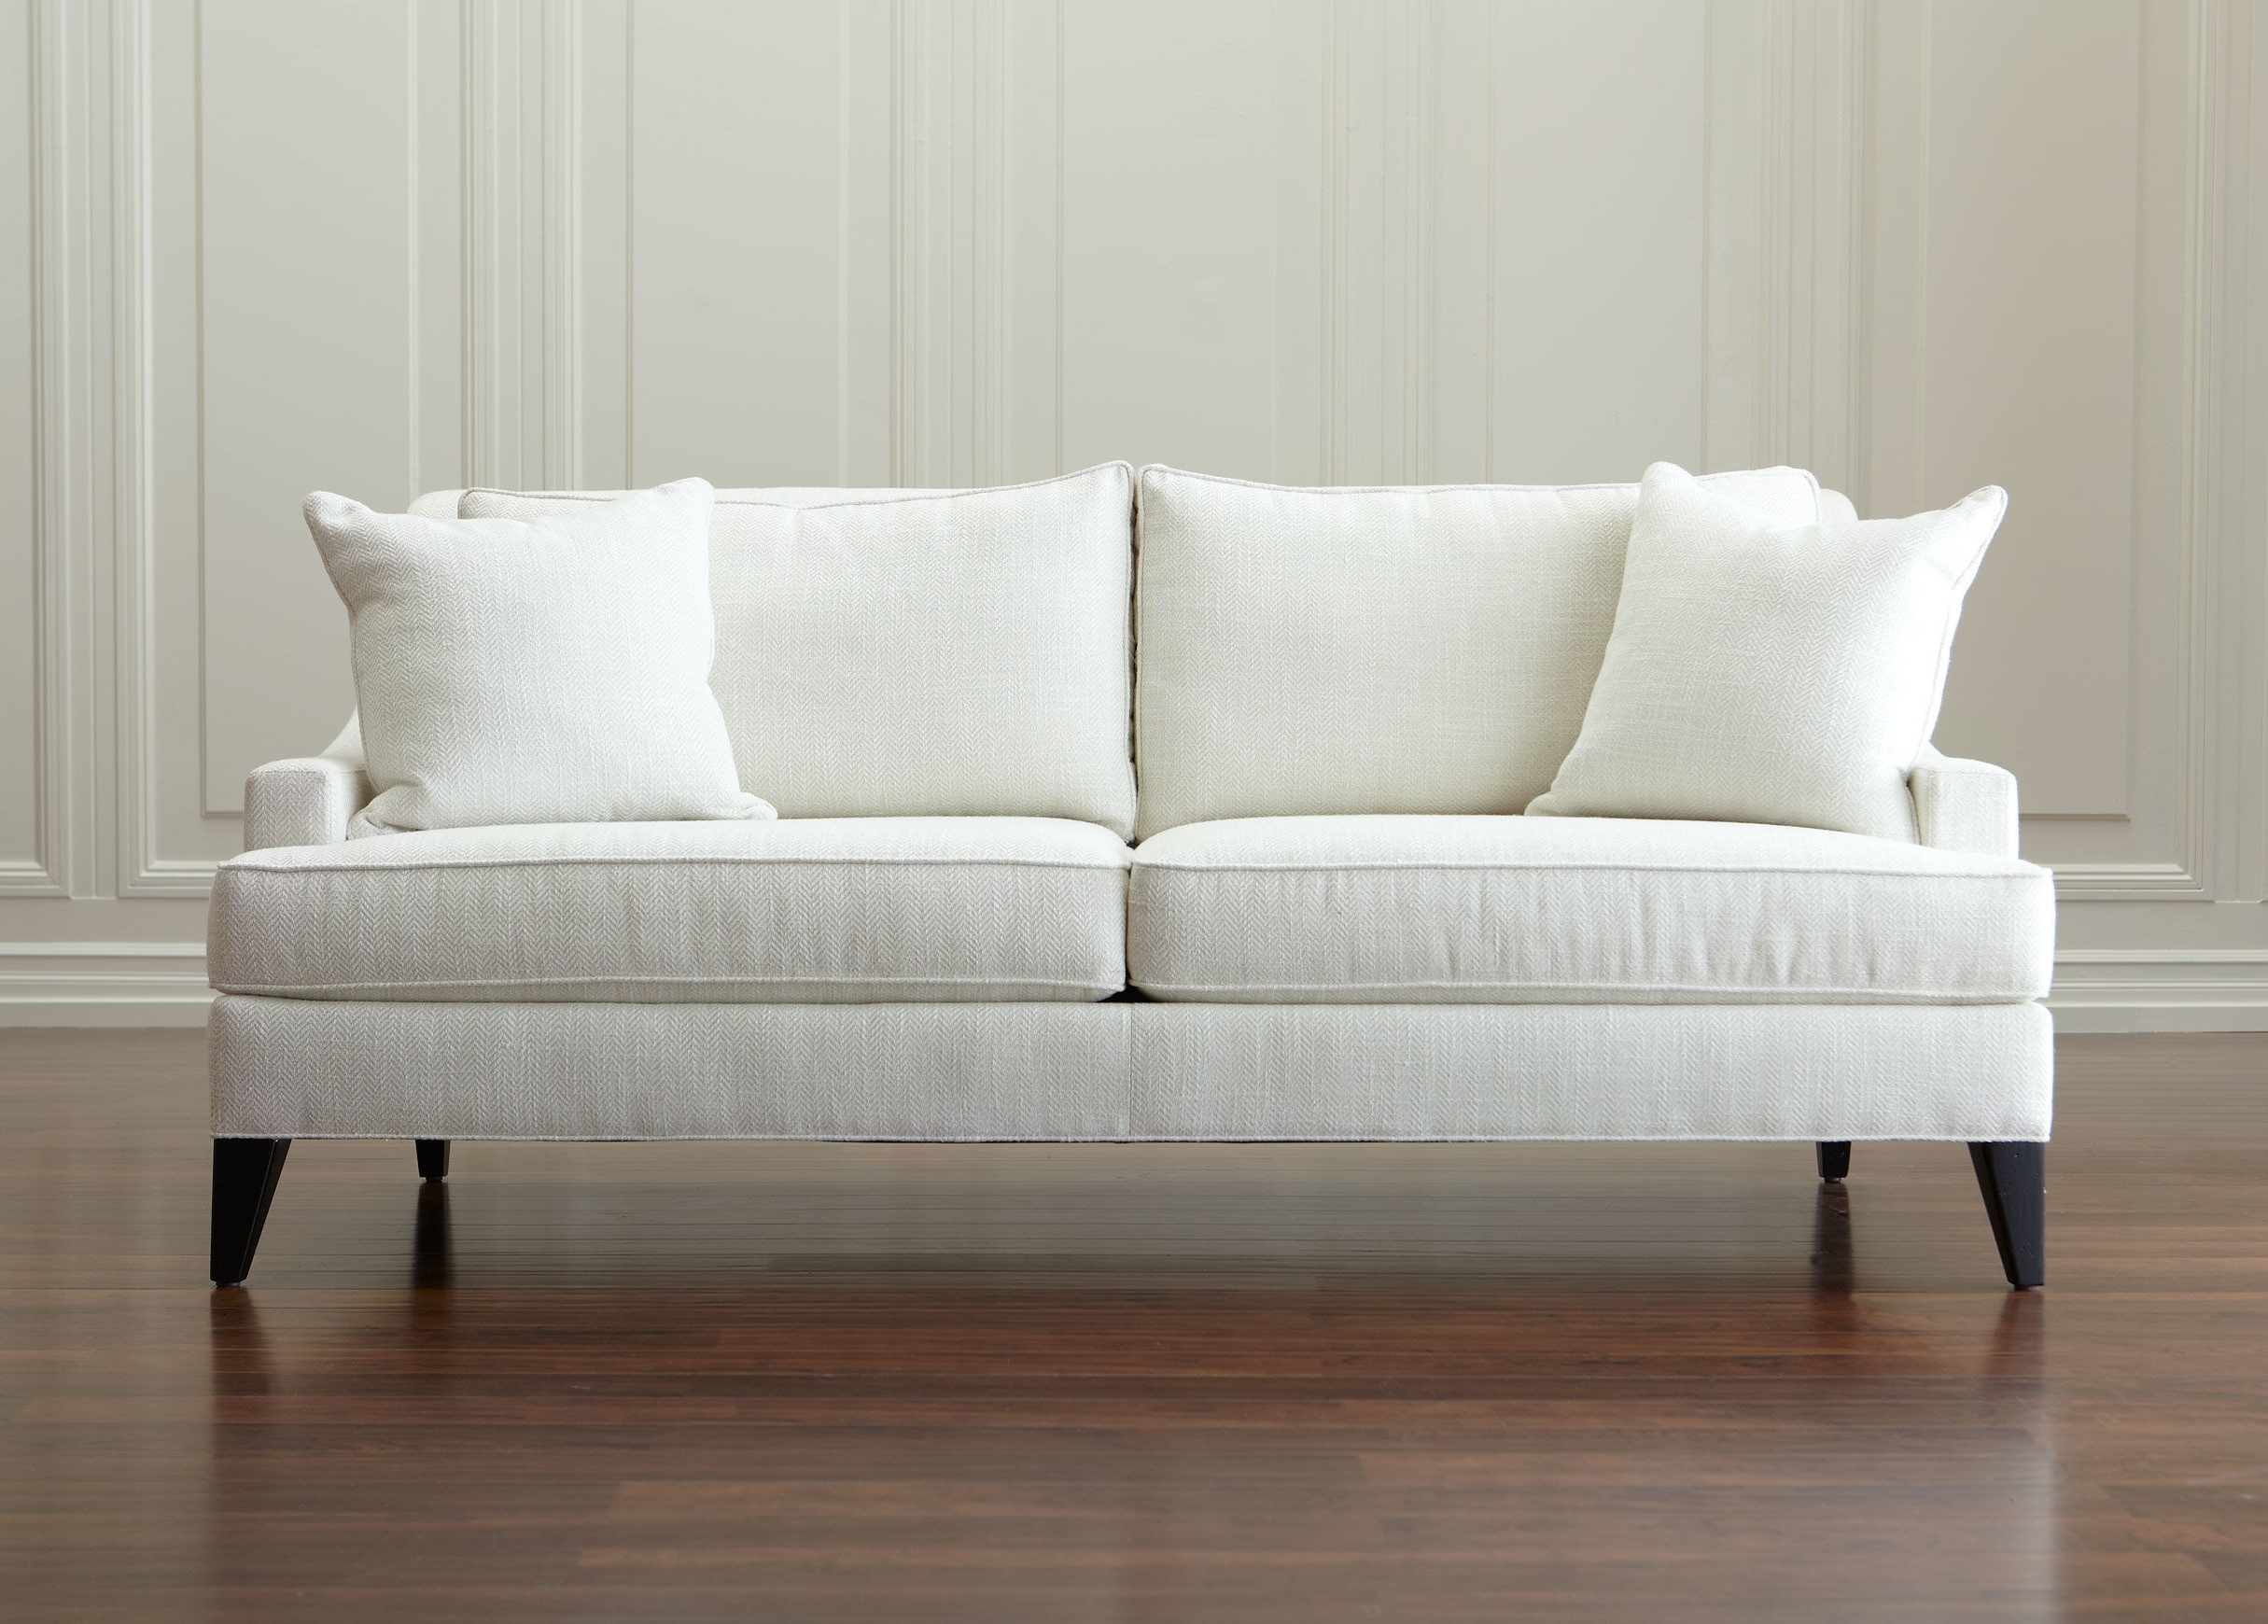 Down Filled Sofas Within Widely Used Furniture : Ethan Allen Down Filled  Sofa Luxury Best Ethan